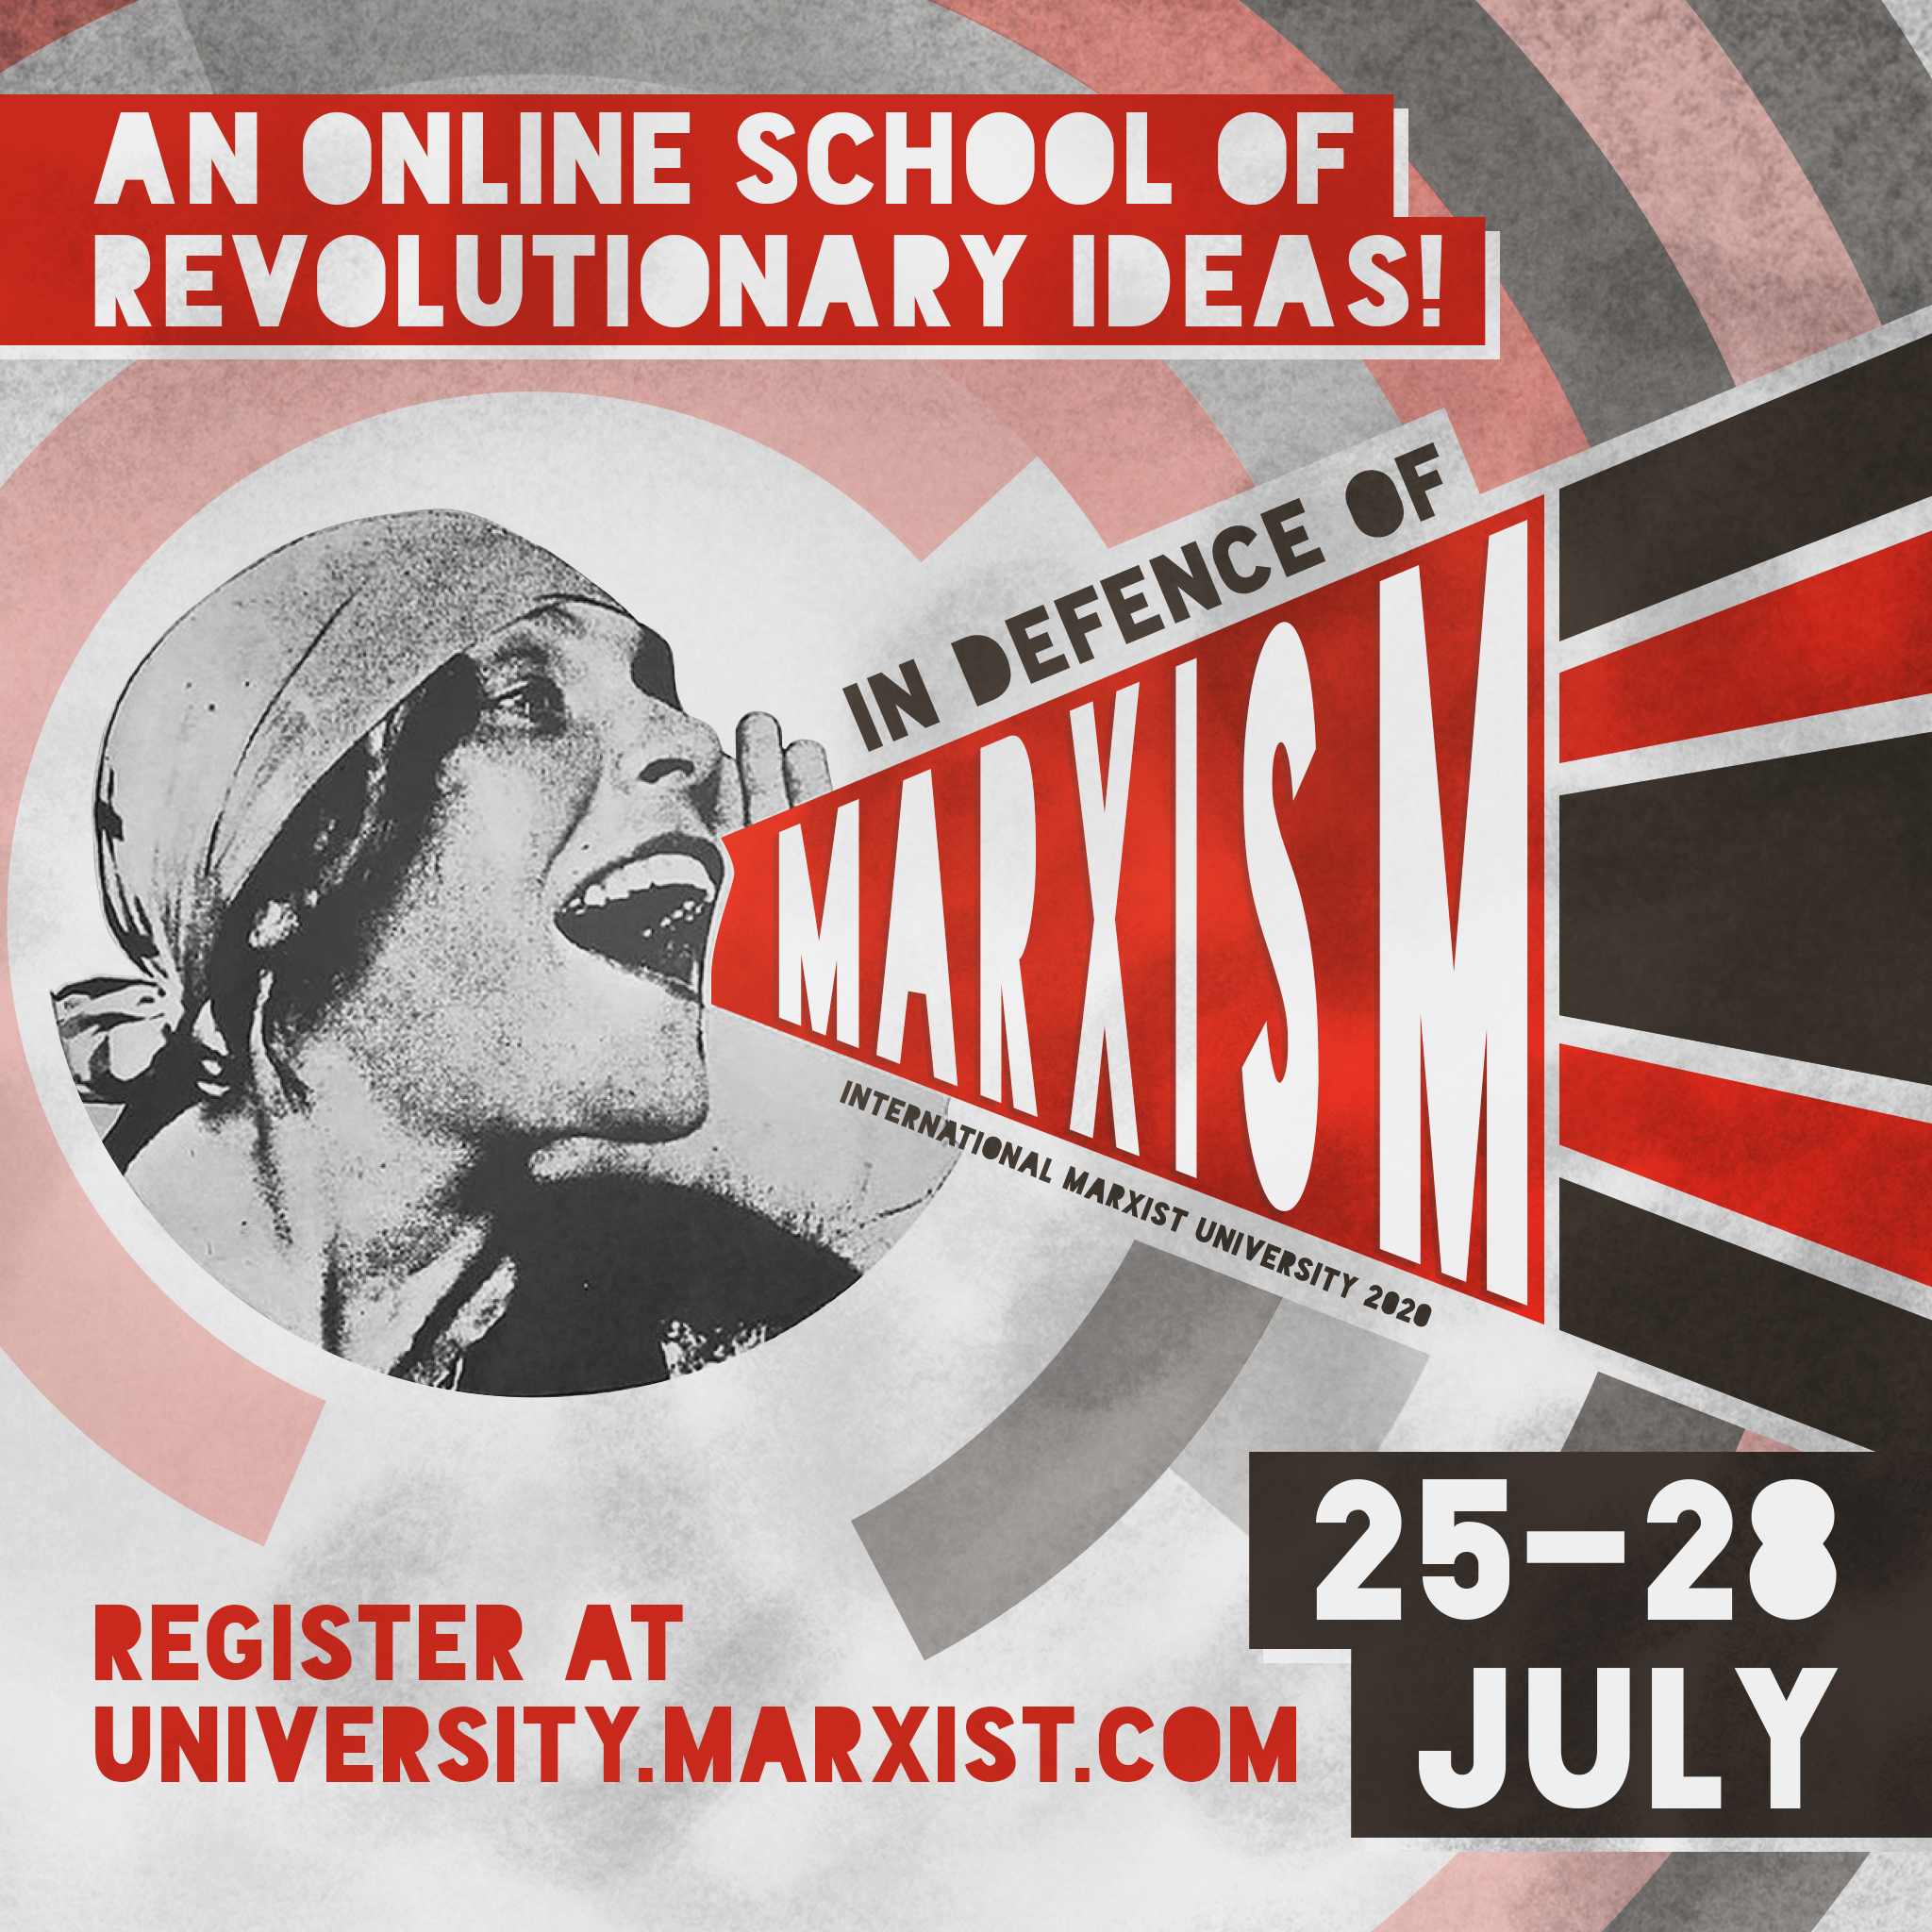 marxist-university-school